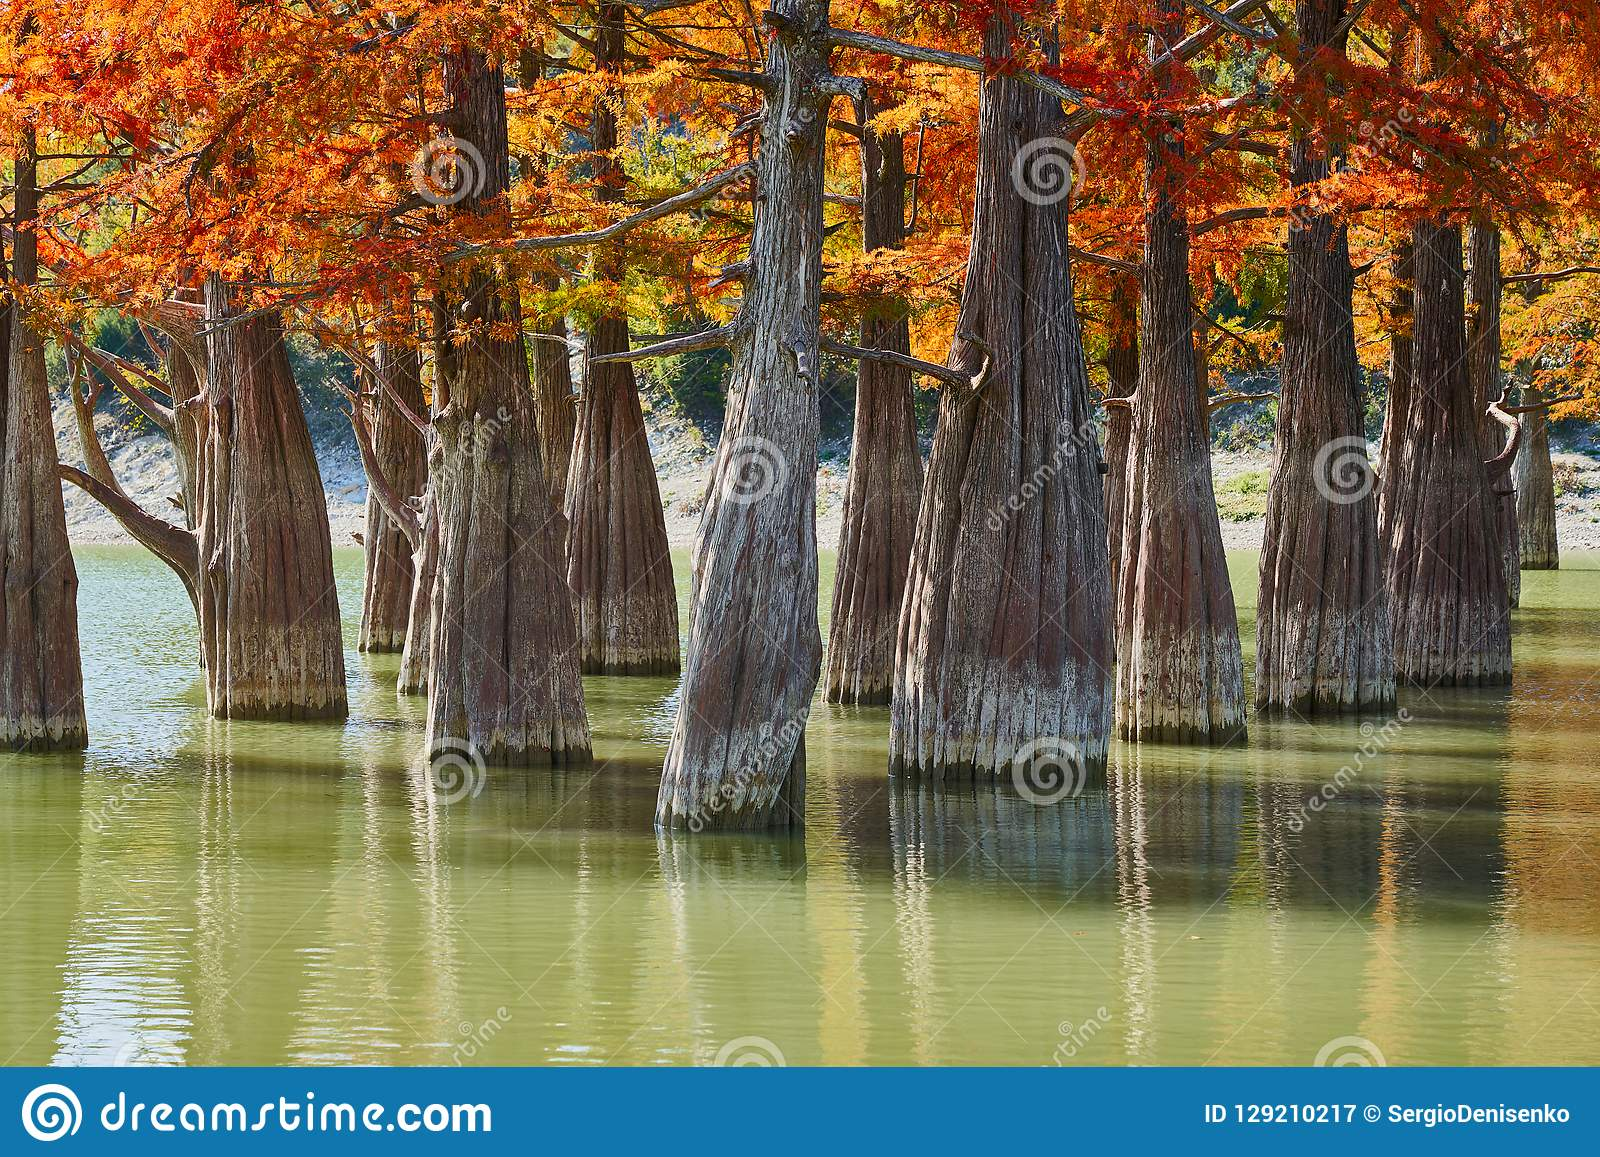 Golden Taxodium distichum stand majestically in a gorgeous lake against the backdrop of the Caucasus Mountains in the fall. Autumn